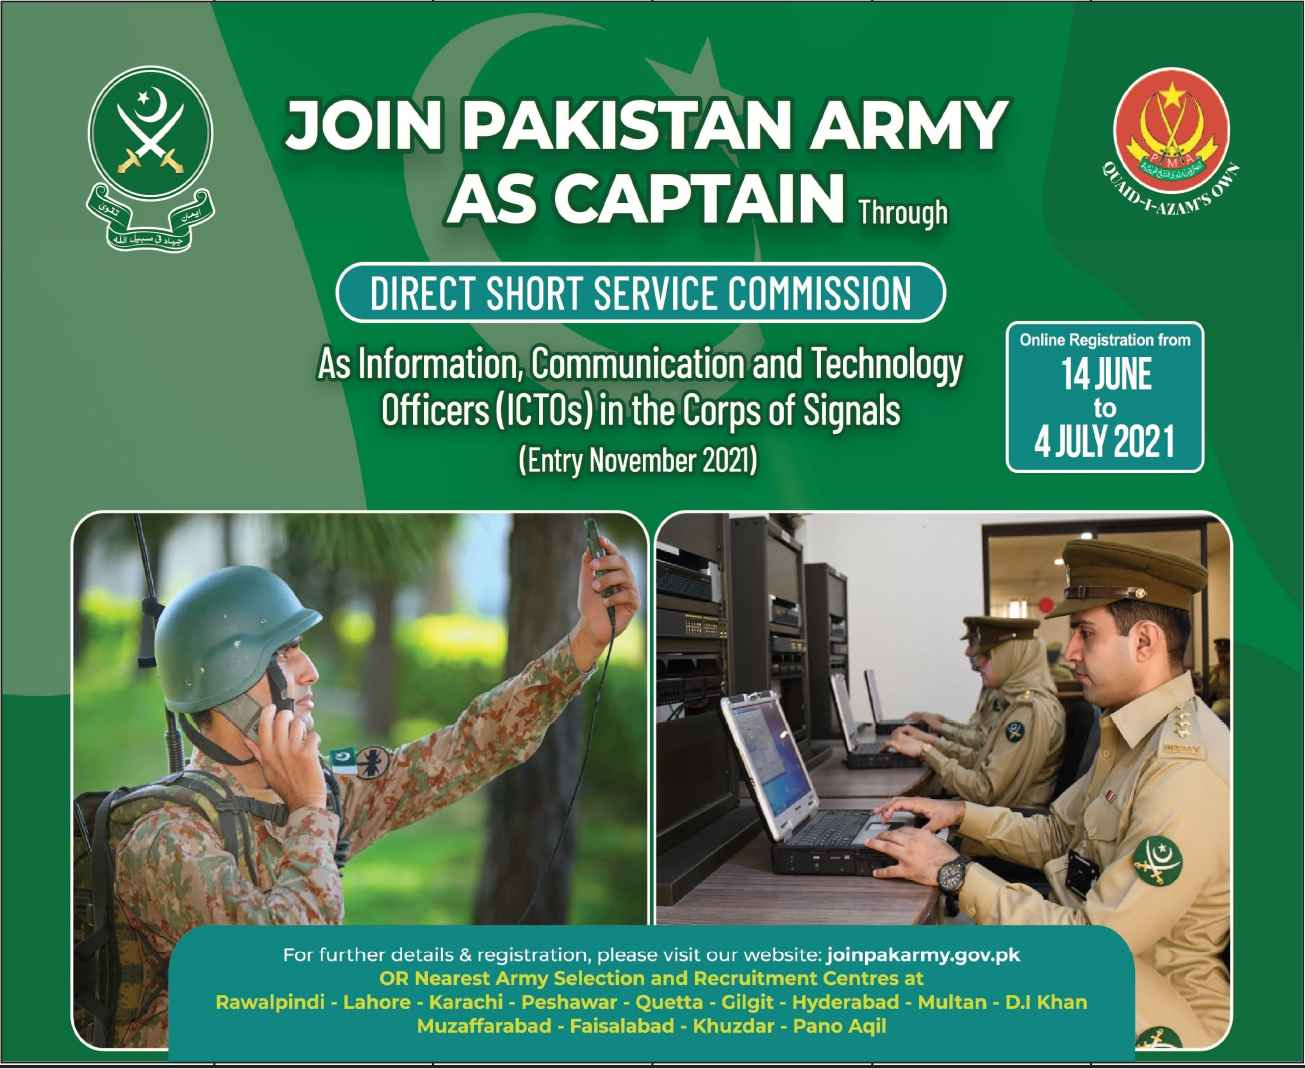 Join Pakistan Army As Captain Through Direct Short Service Commission For ICTOs Officers Jobs 2021